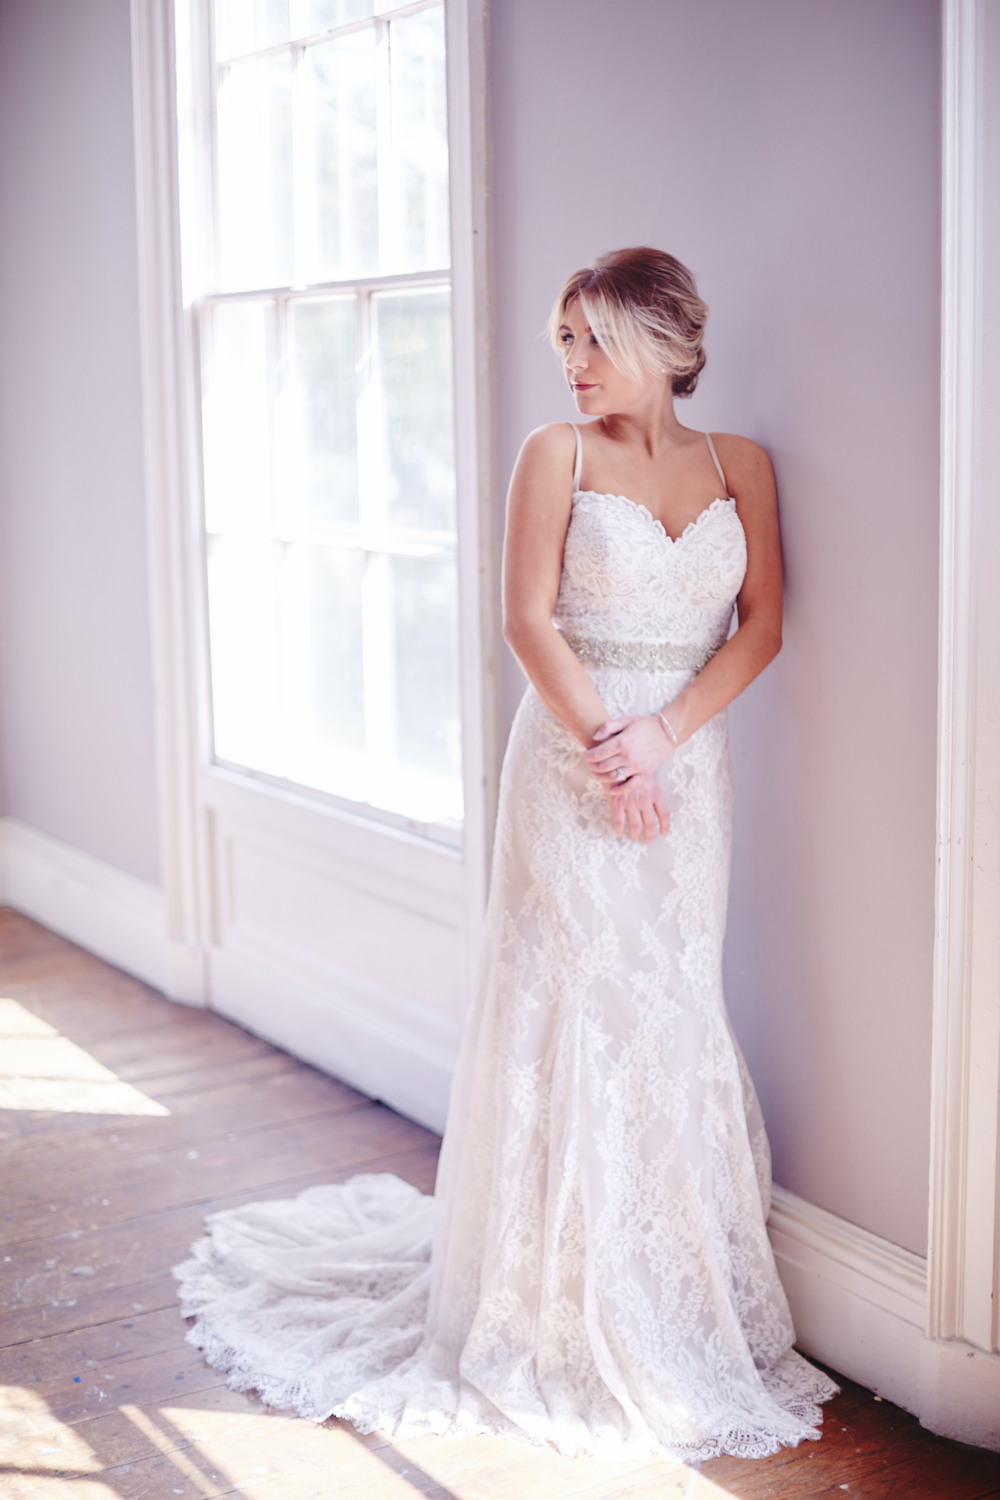 Styled_Session_Becca_Bridal_Portraits_Sarah_Tau_Photography_HOB_Studio_285 118.jpg